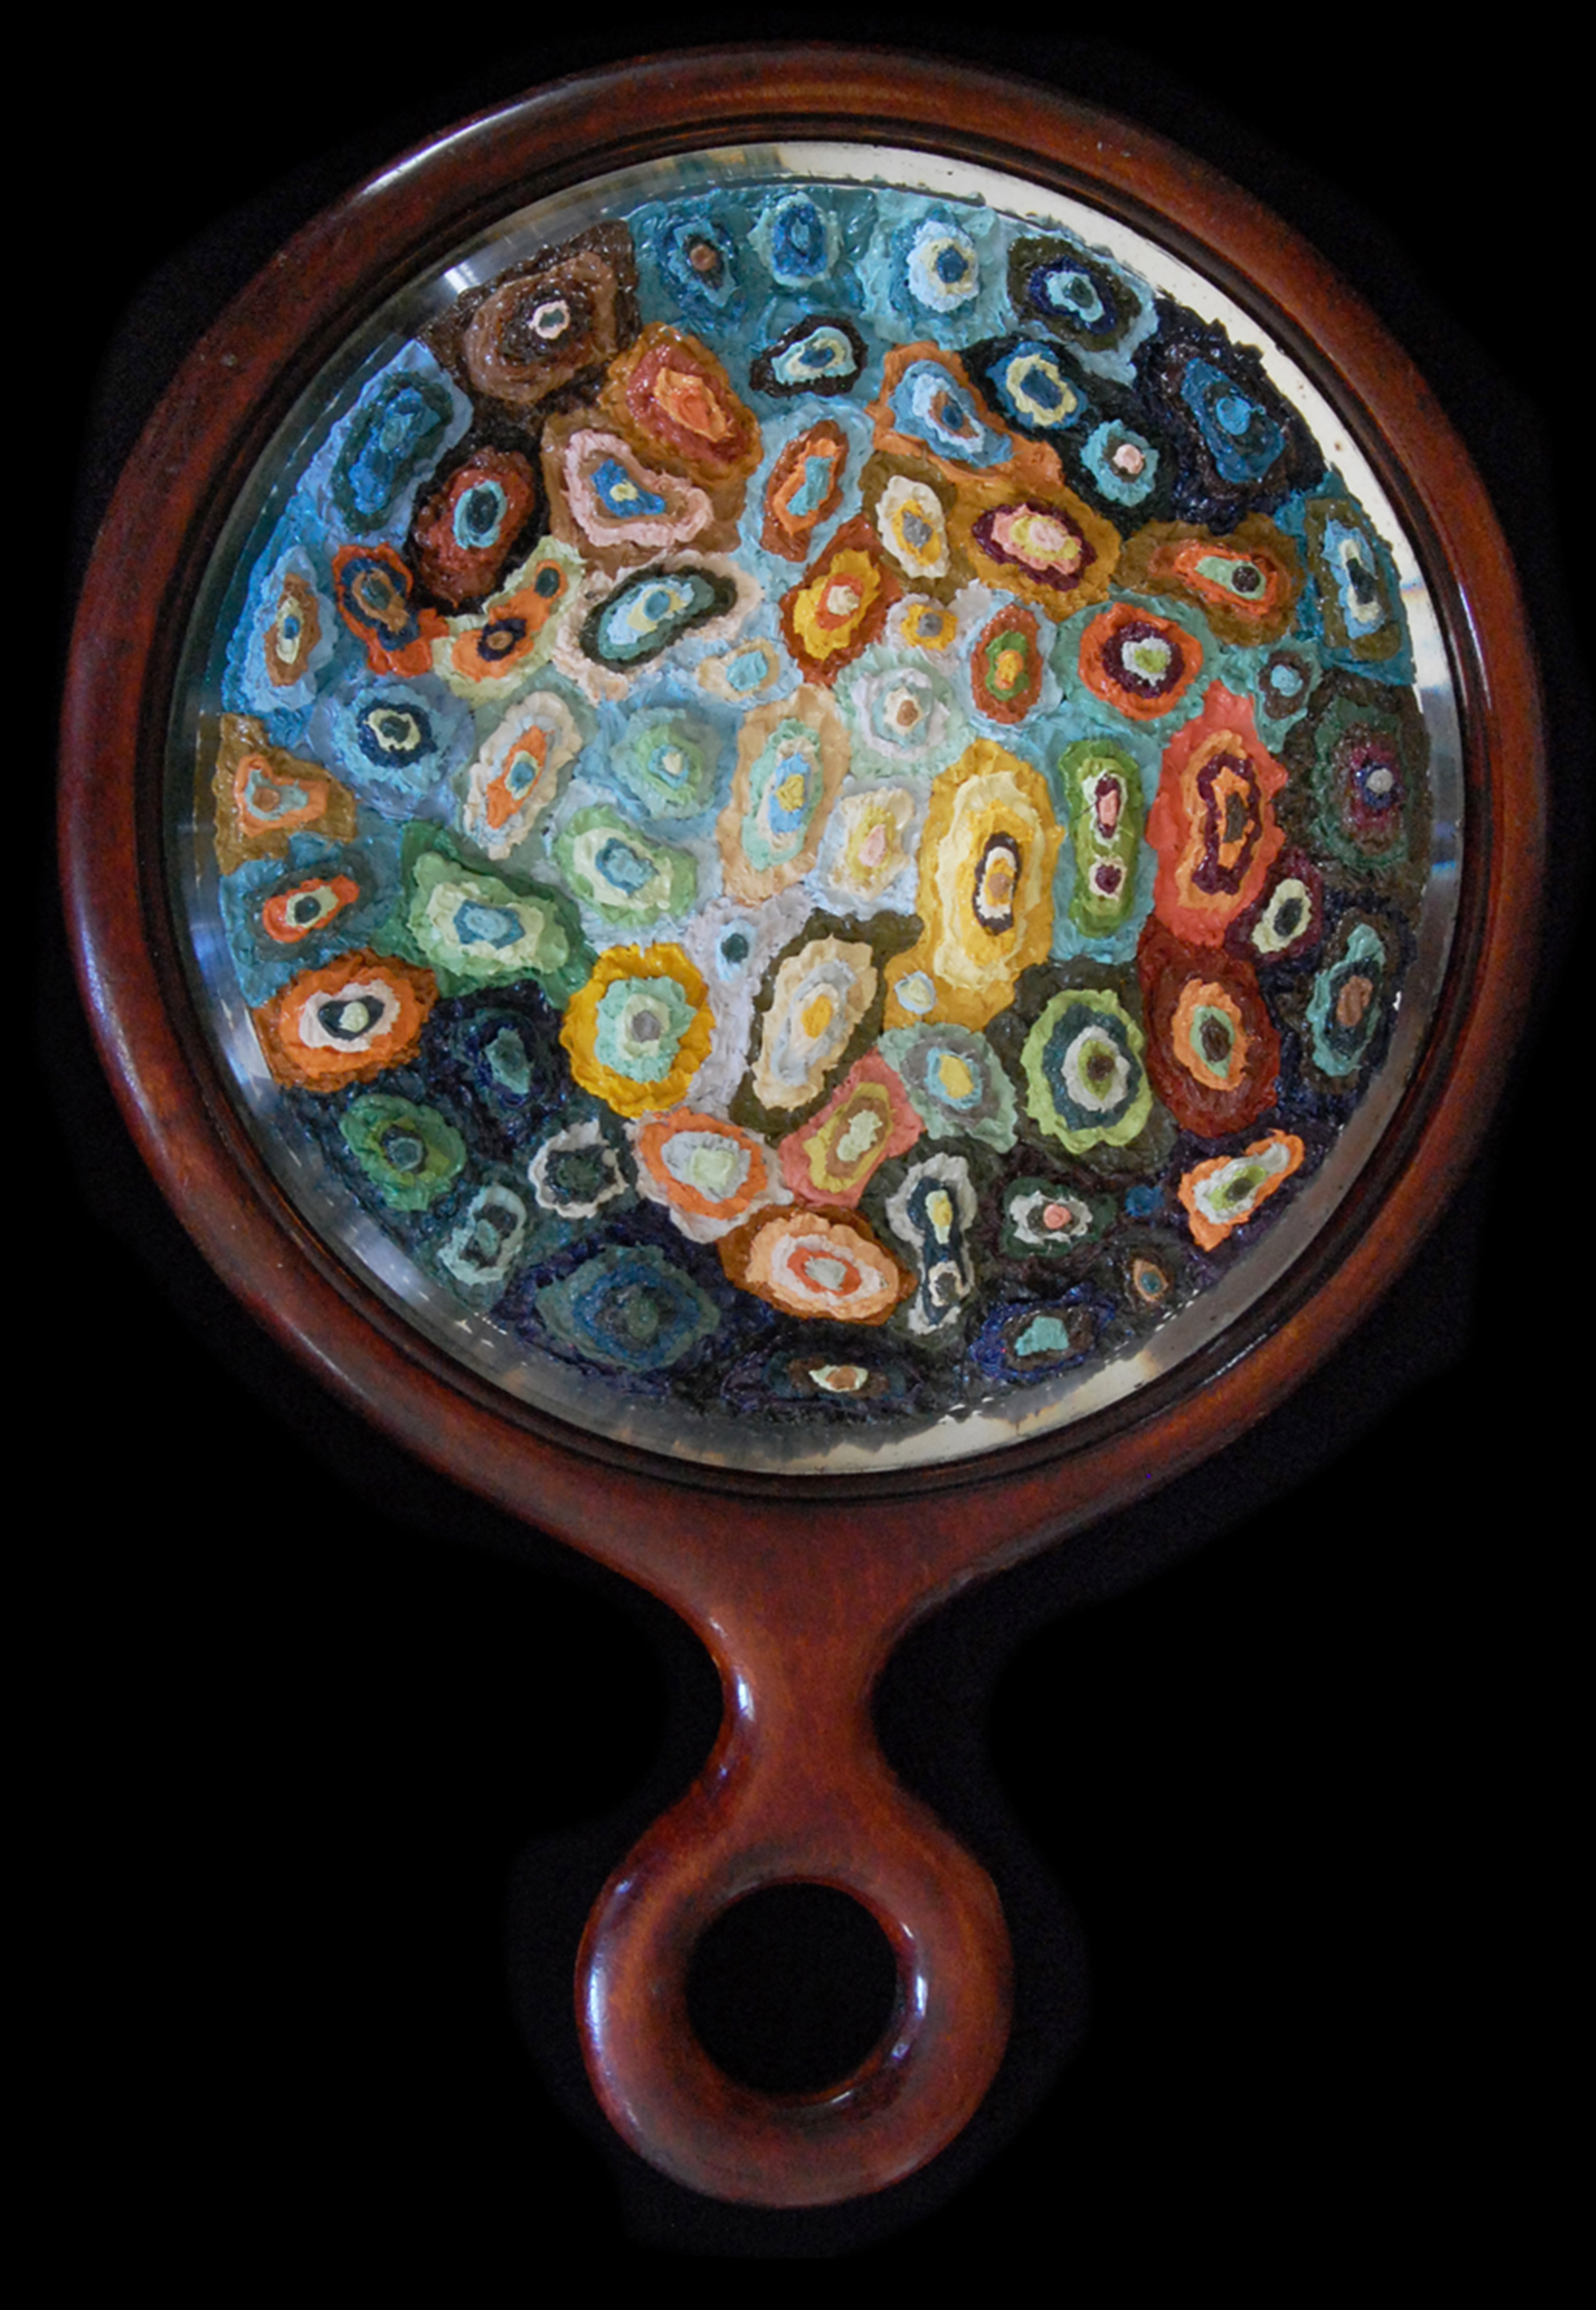 AP XXI (The Birth of Venus), 2012  |  10.75 x 7.5 x 1 inches  |  oil on glass and wood